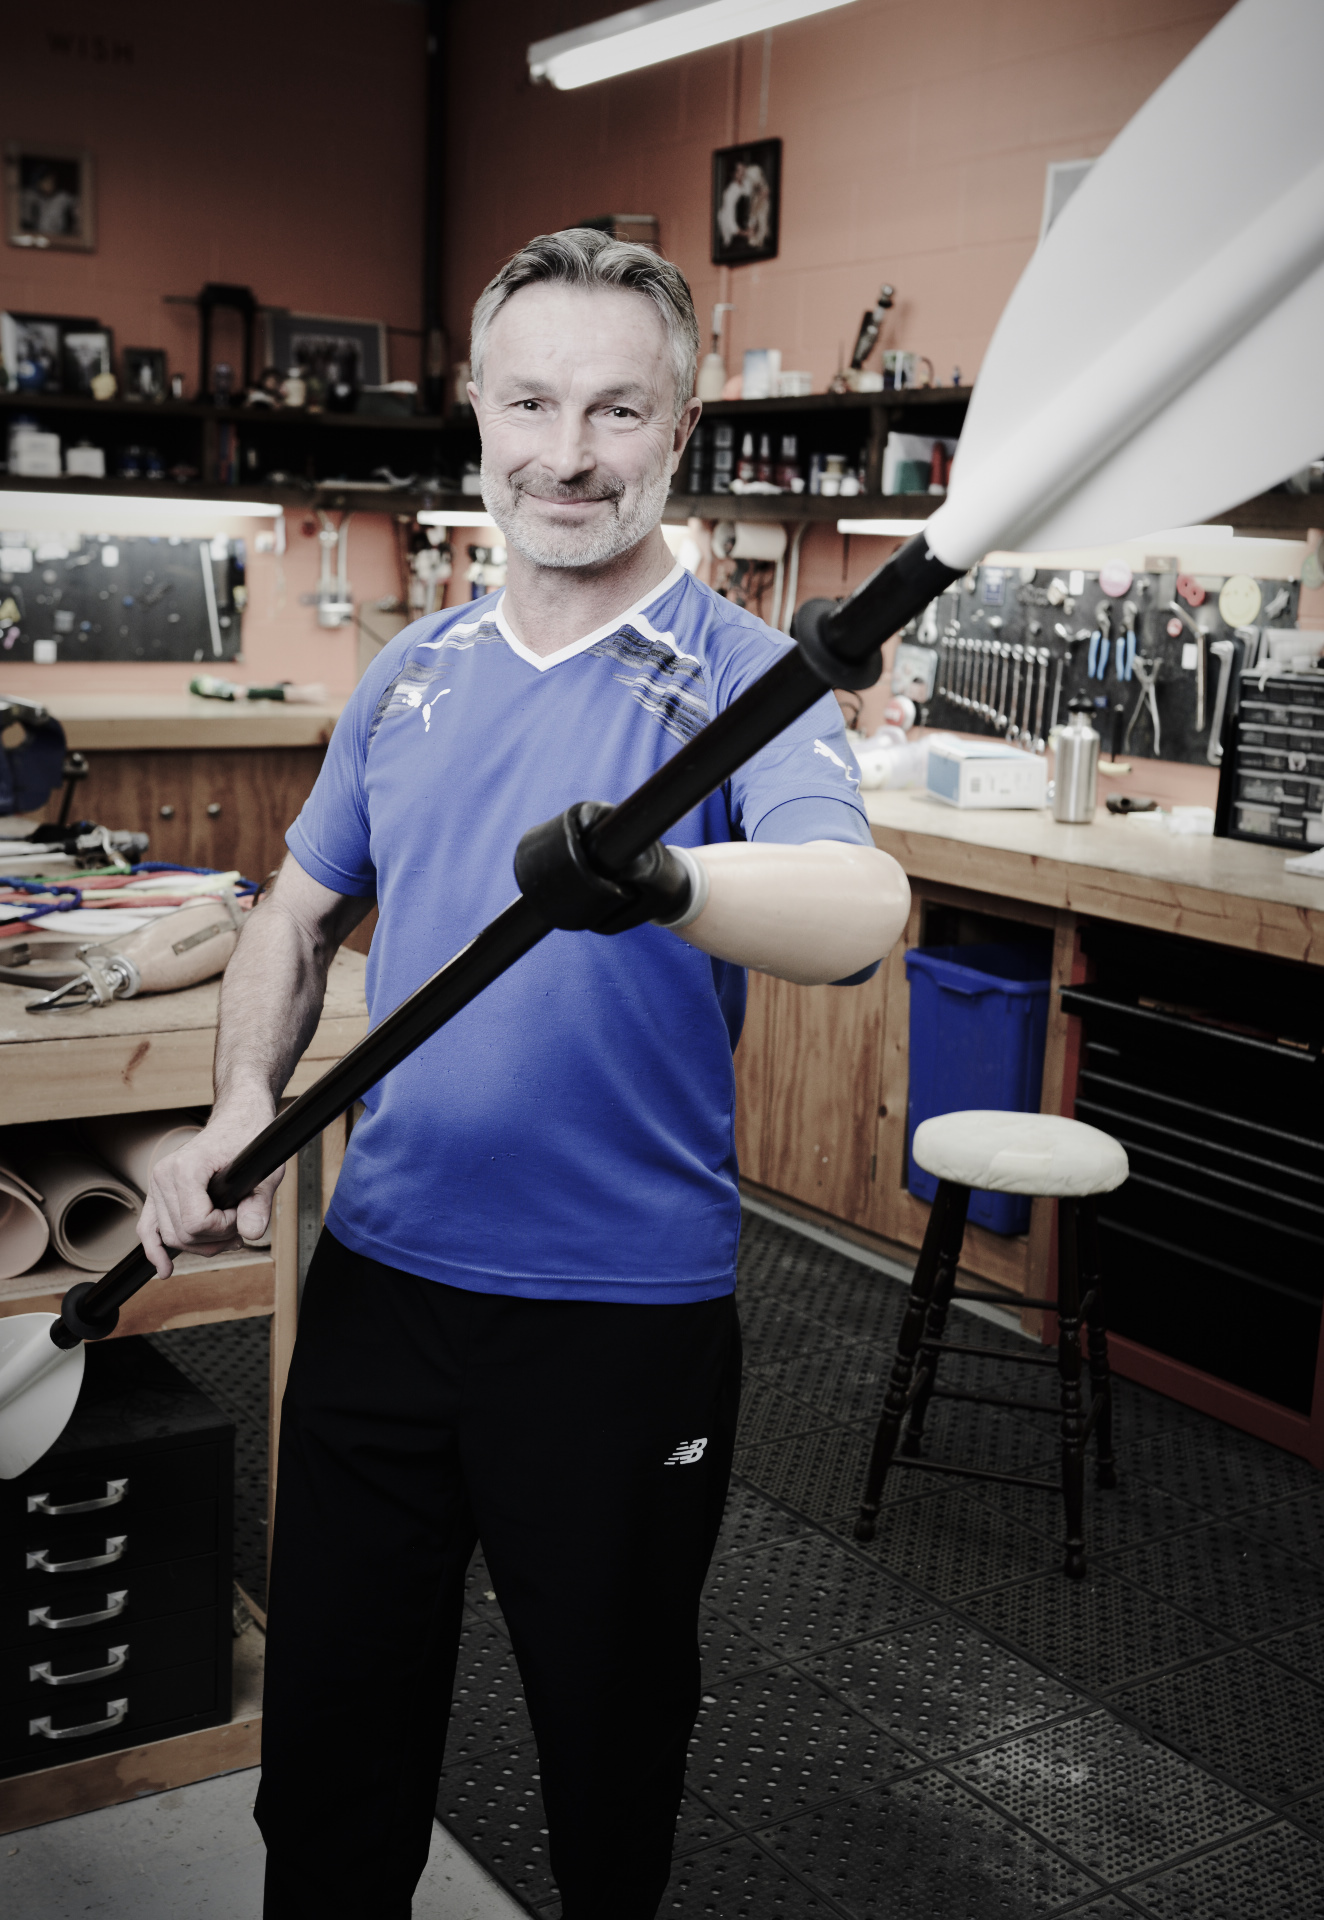 man with transradial kayak prosthesis